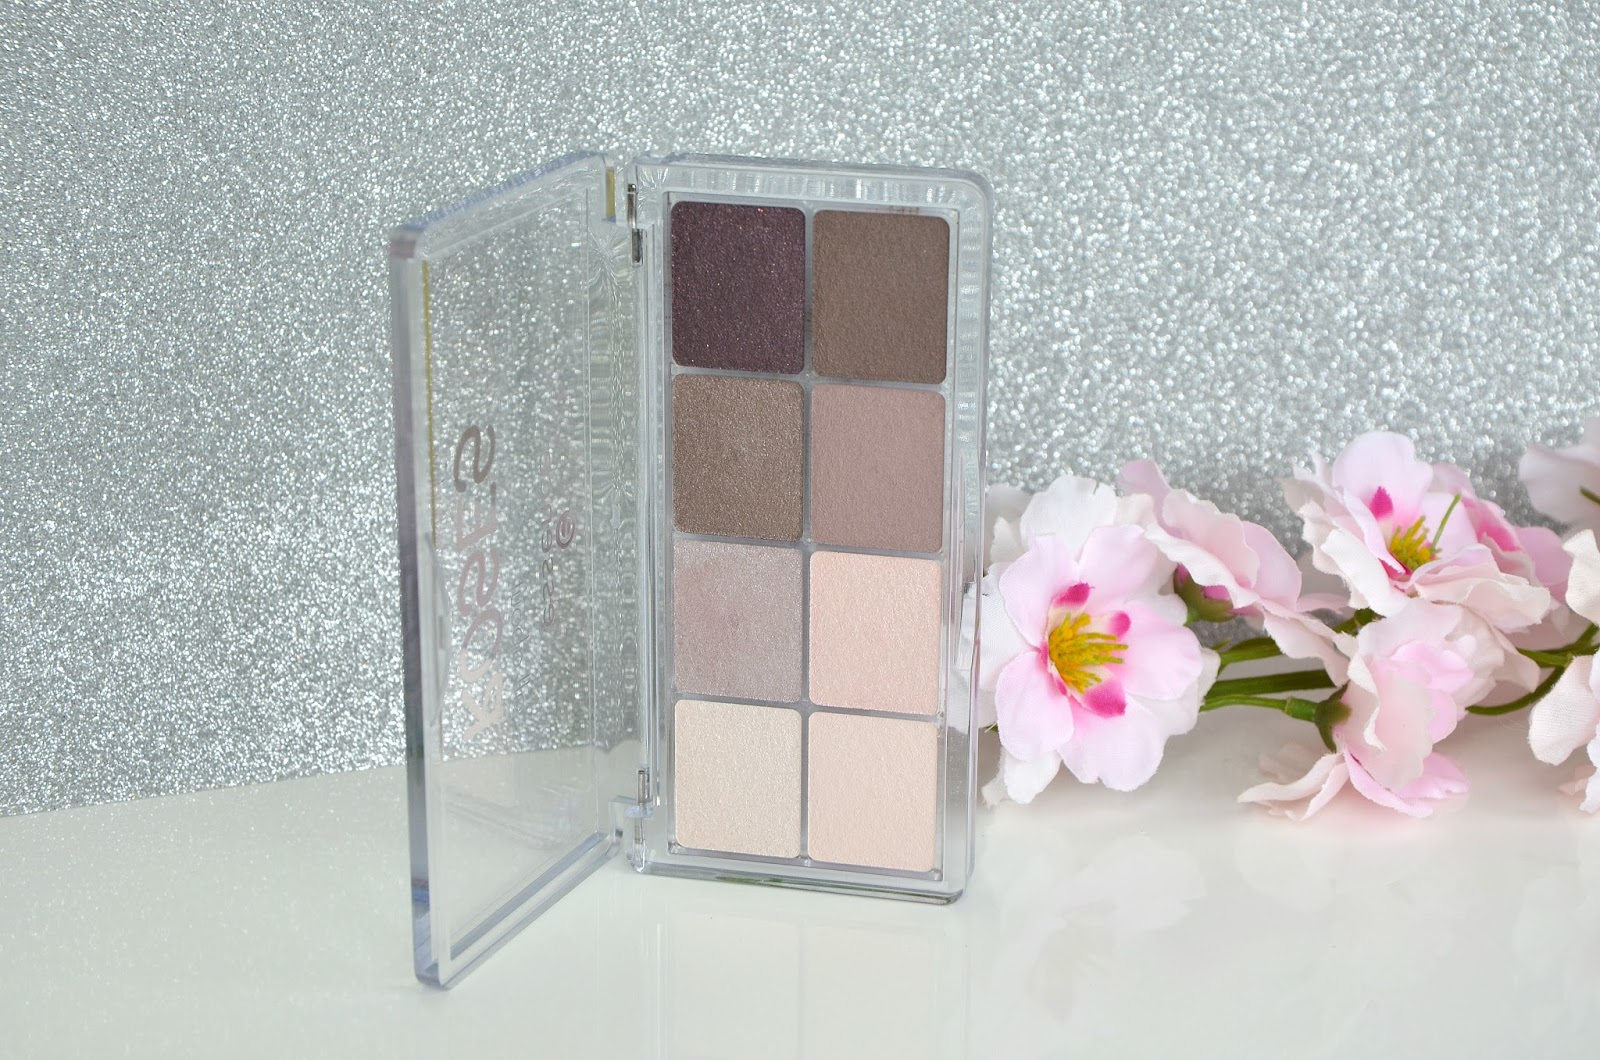 All about roses eyeshadow palette yeux Essence